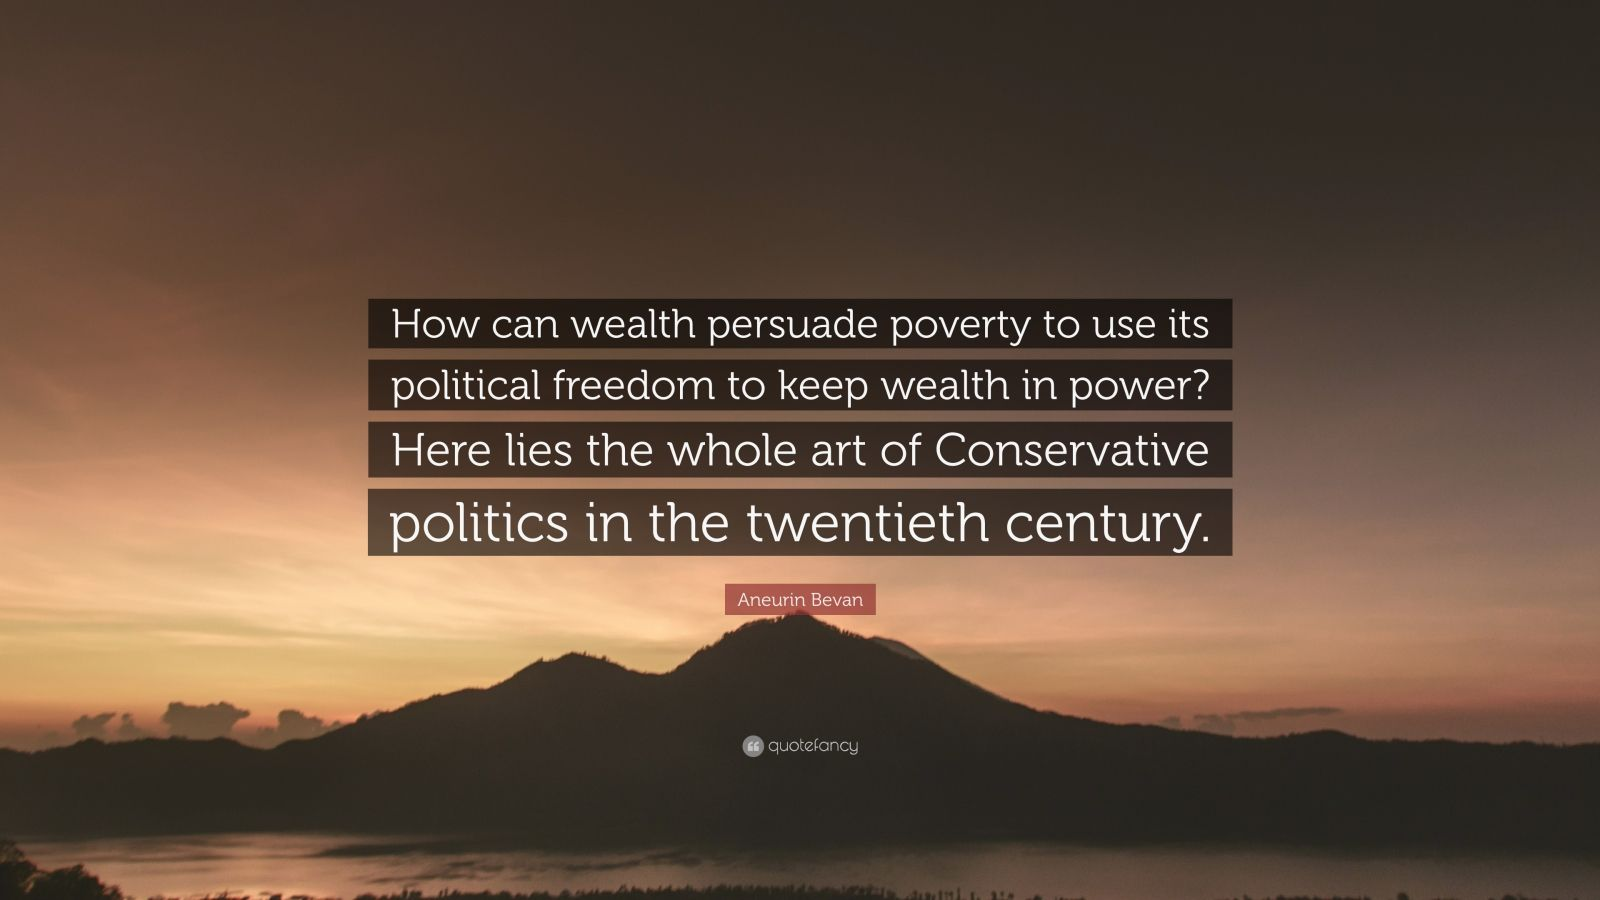 """Aneurin Bevan Quote: """"How can wealth persuade poverty to use its political freedom to keep wealth in power? Here lies the whole art of Conservative politics in the twentieth century."""""""